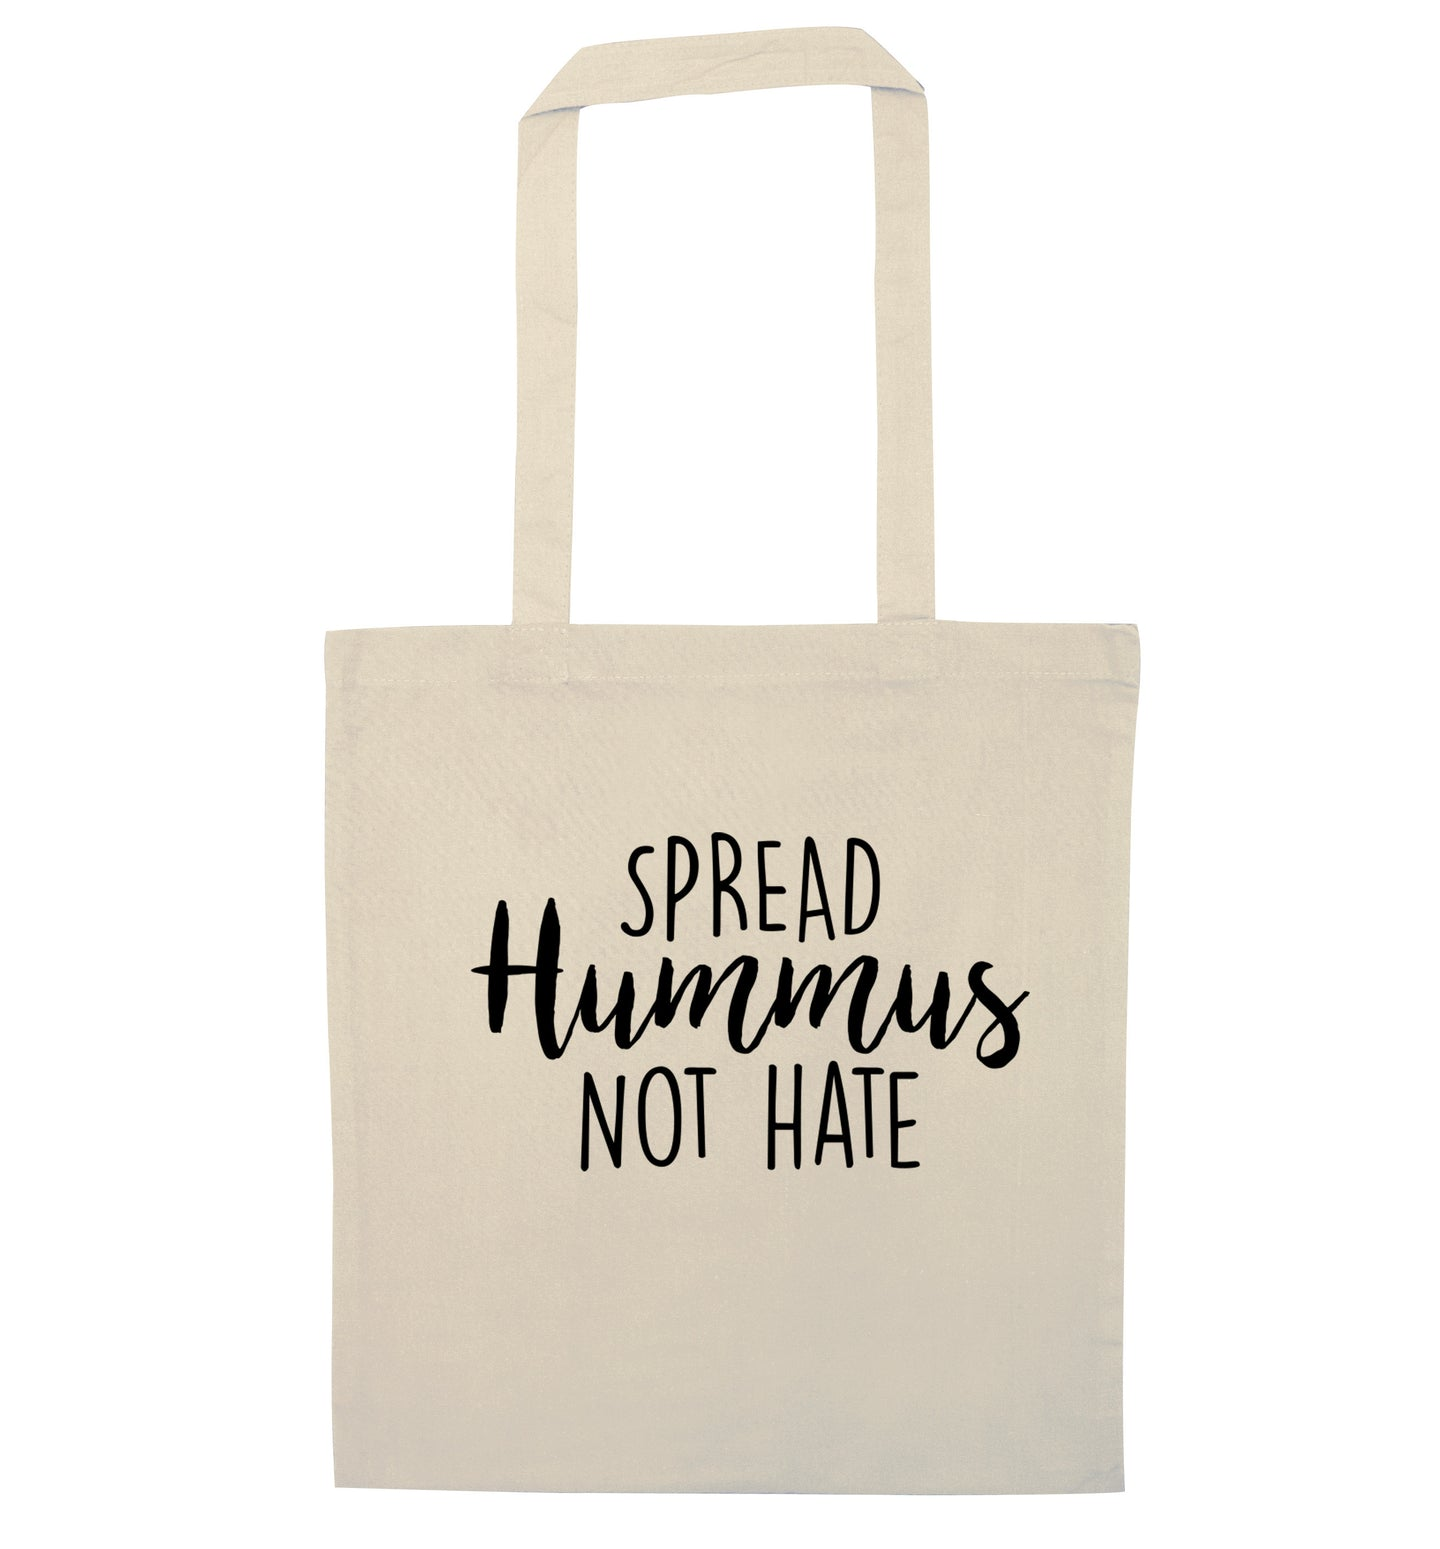 Spread hummus not hate script text natural tote bag